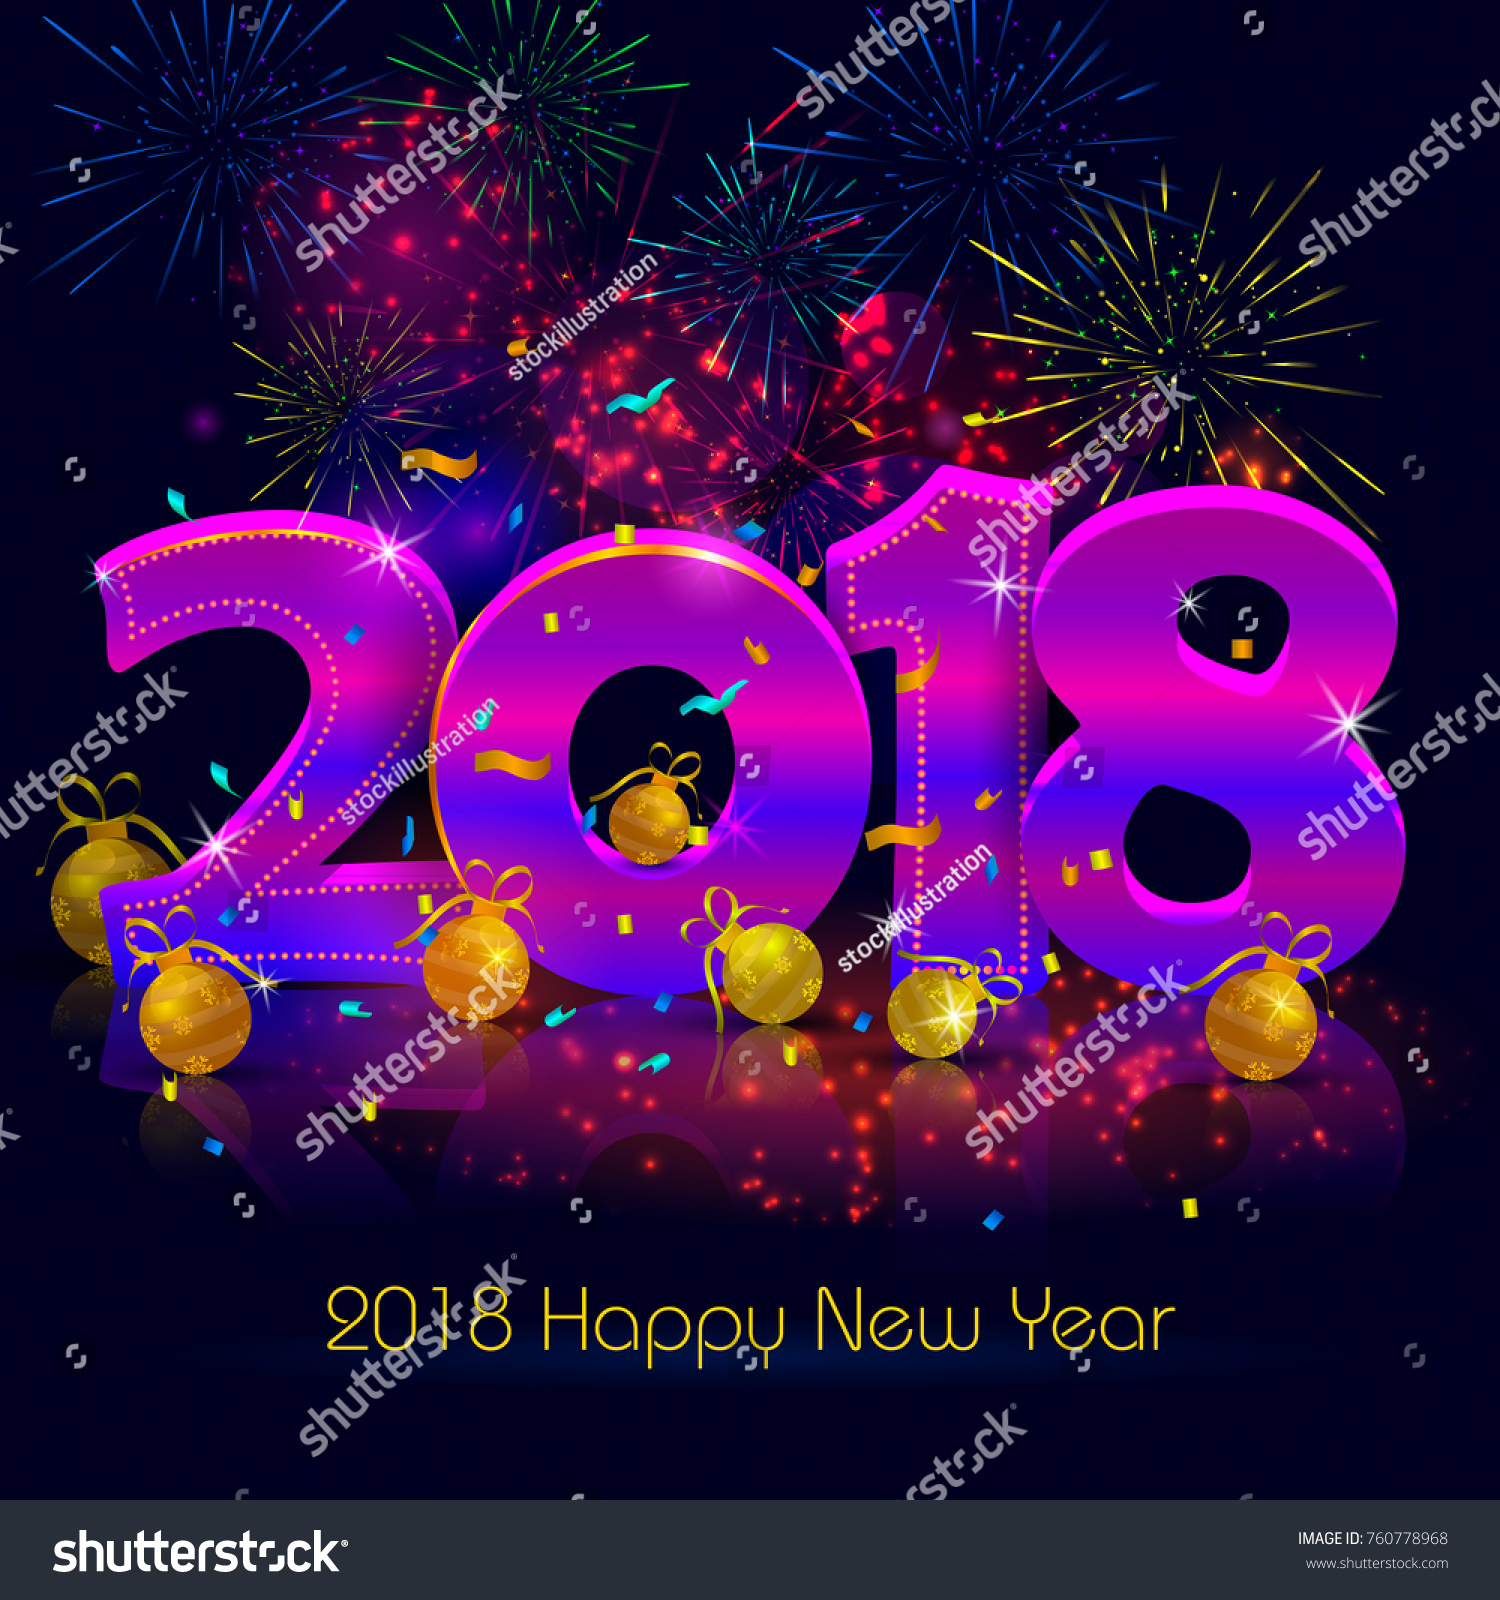 Happy New Year 2018 Wishes Greeting Stock Vector 760778968